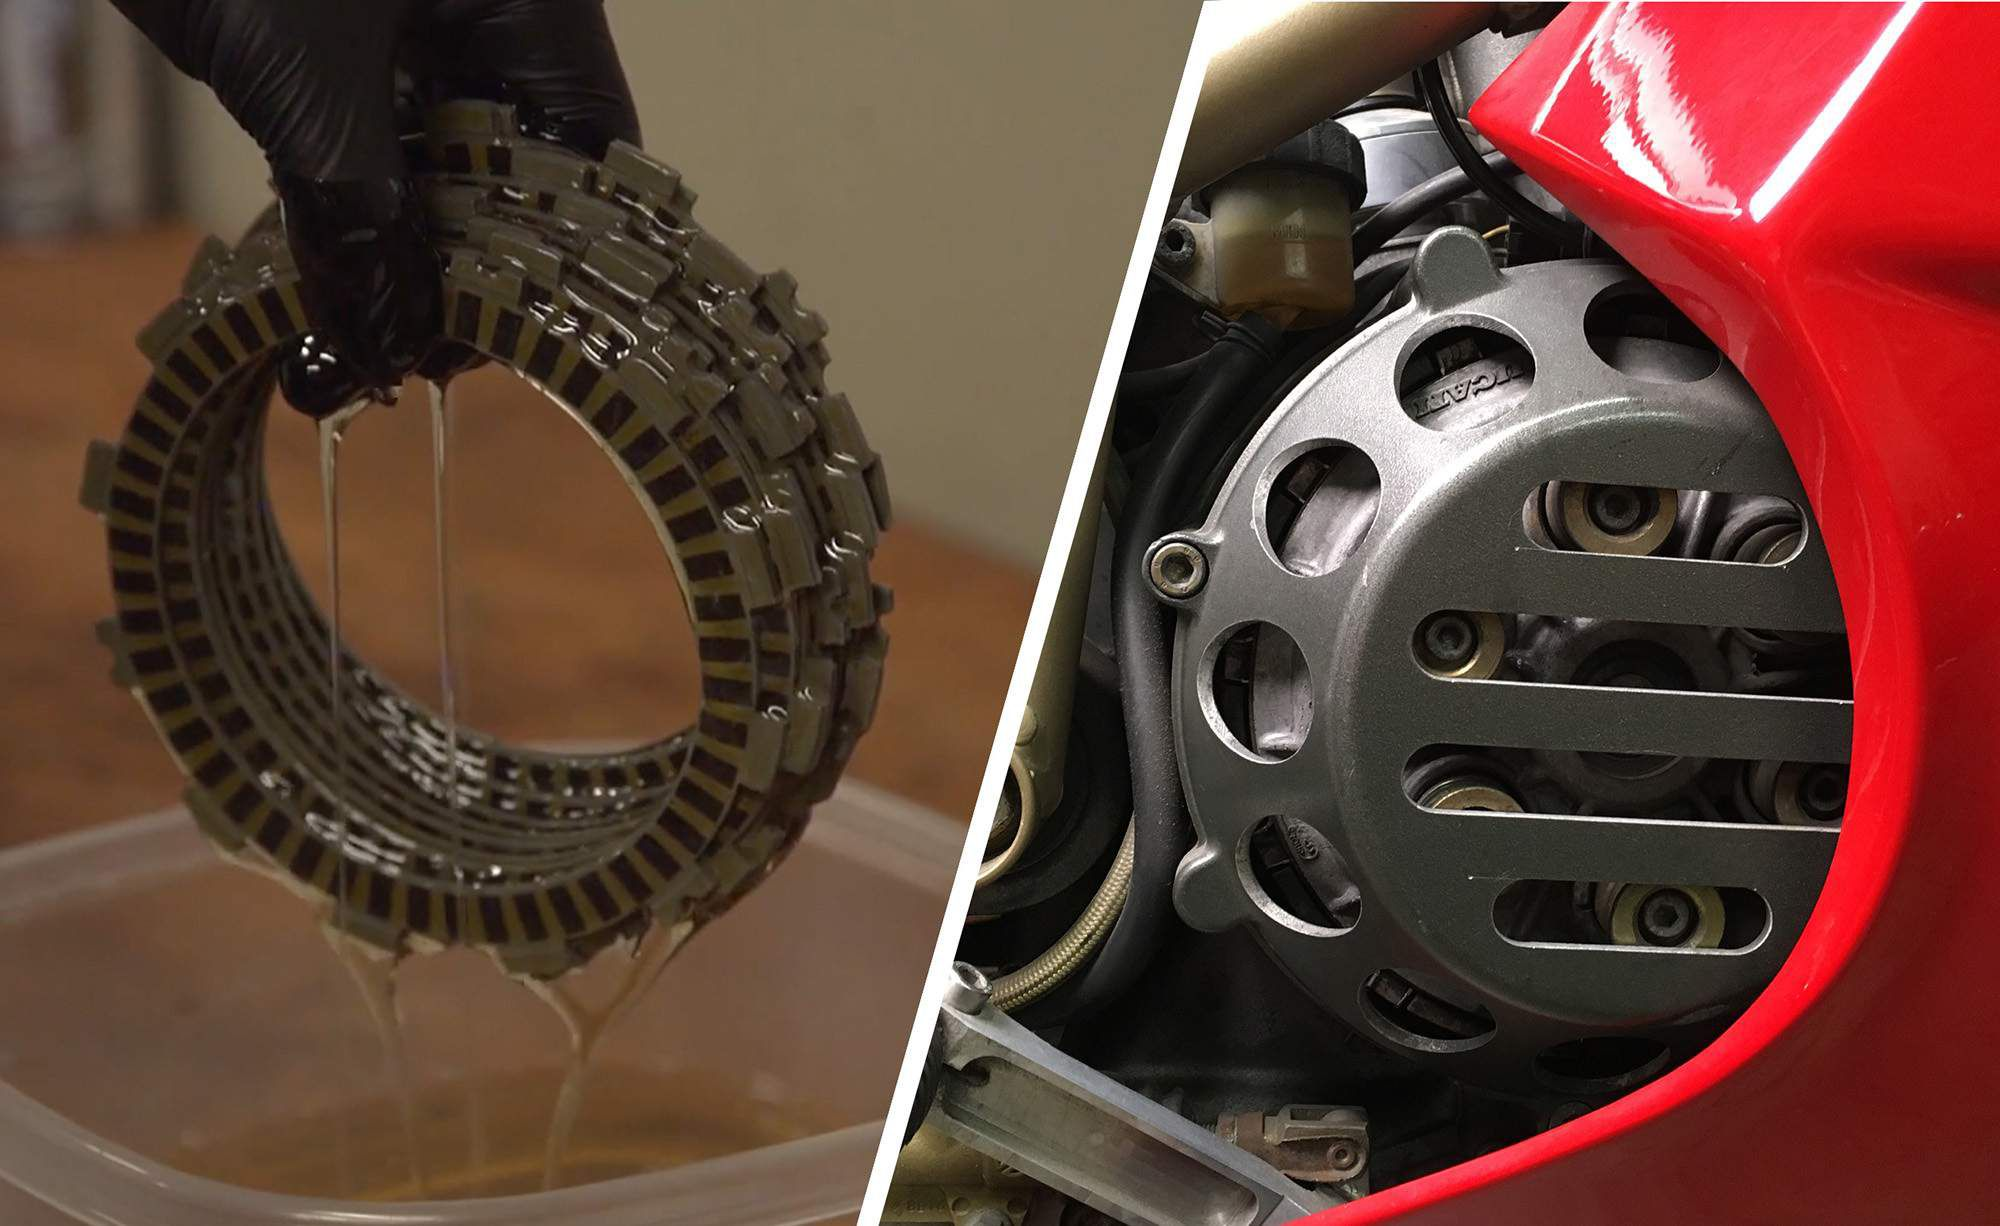 Wet Clutch vs  Dry Clutch - What's the Difference? | MC GARAGE